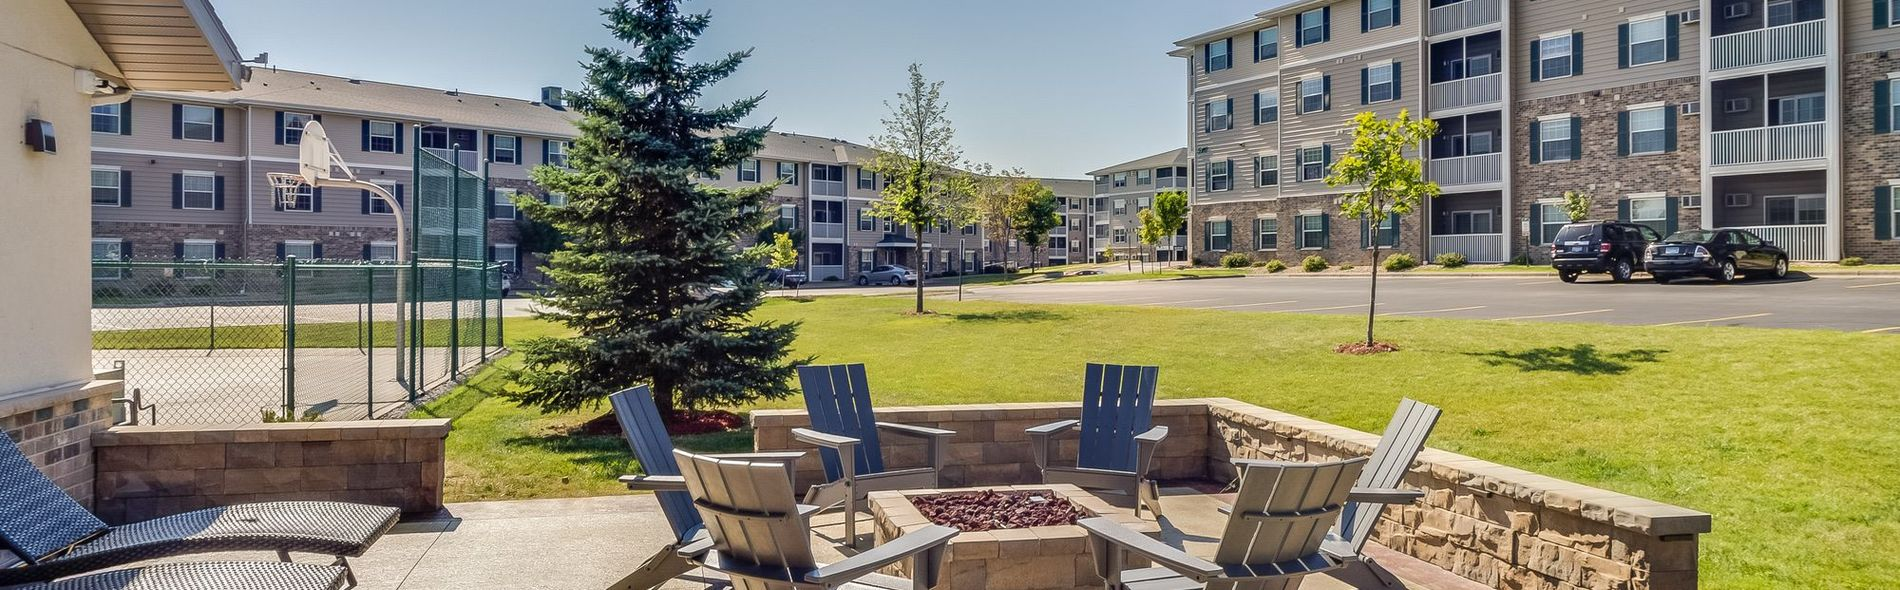 Apartments For Rent In Duluth Mn Boulder Ridge Home